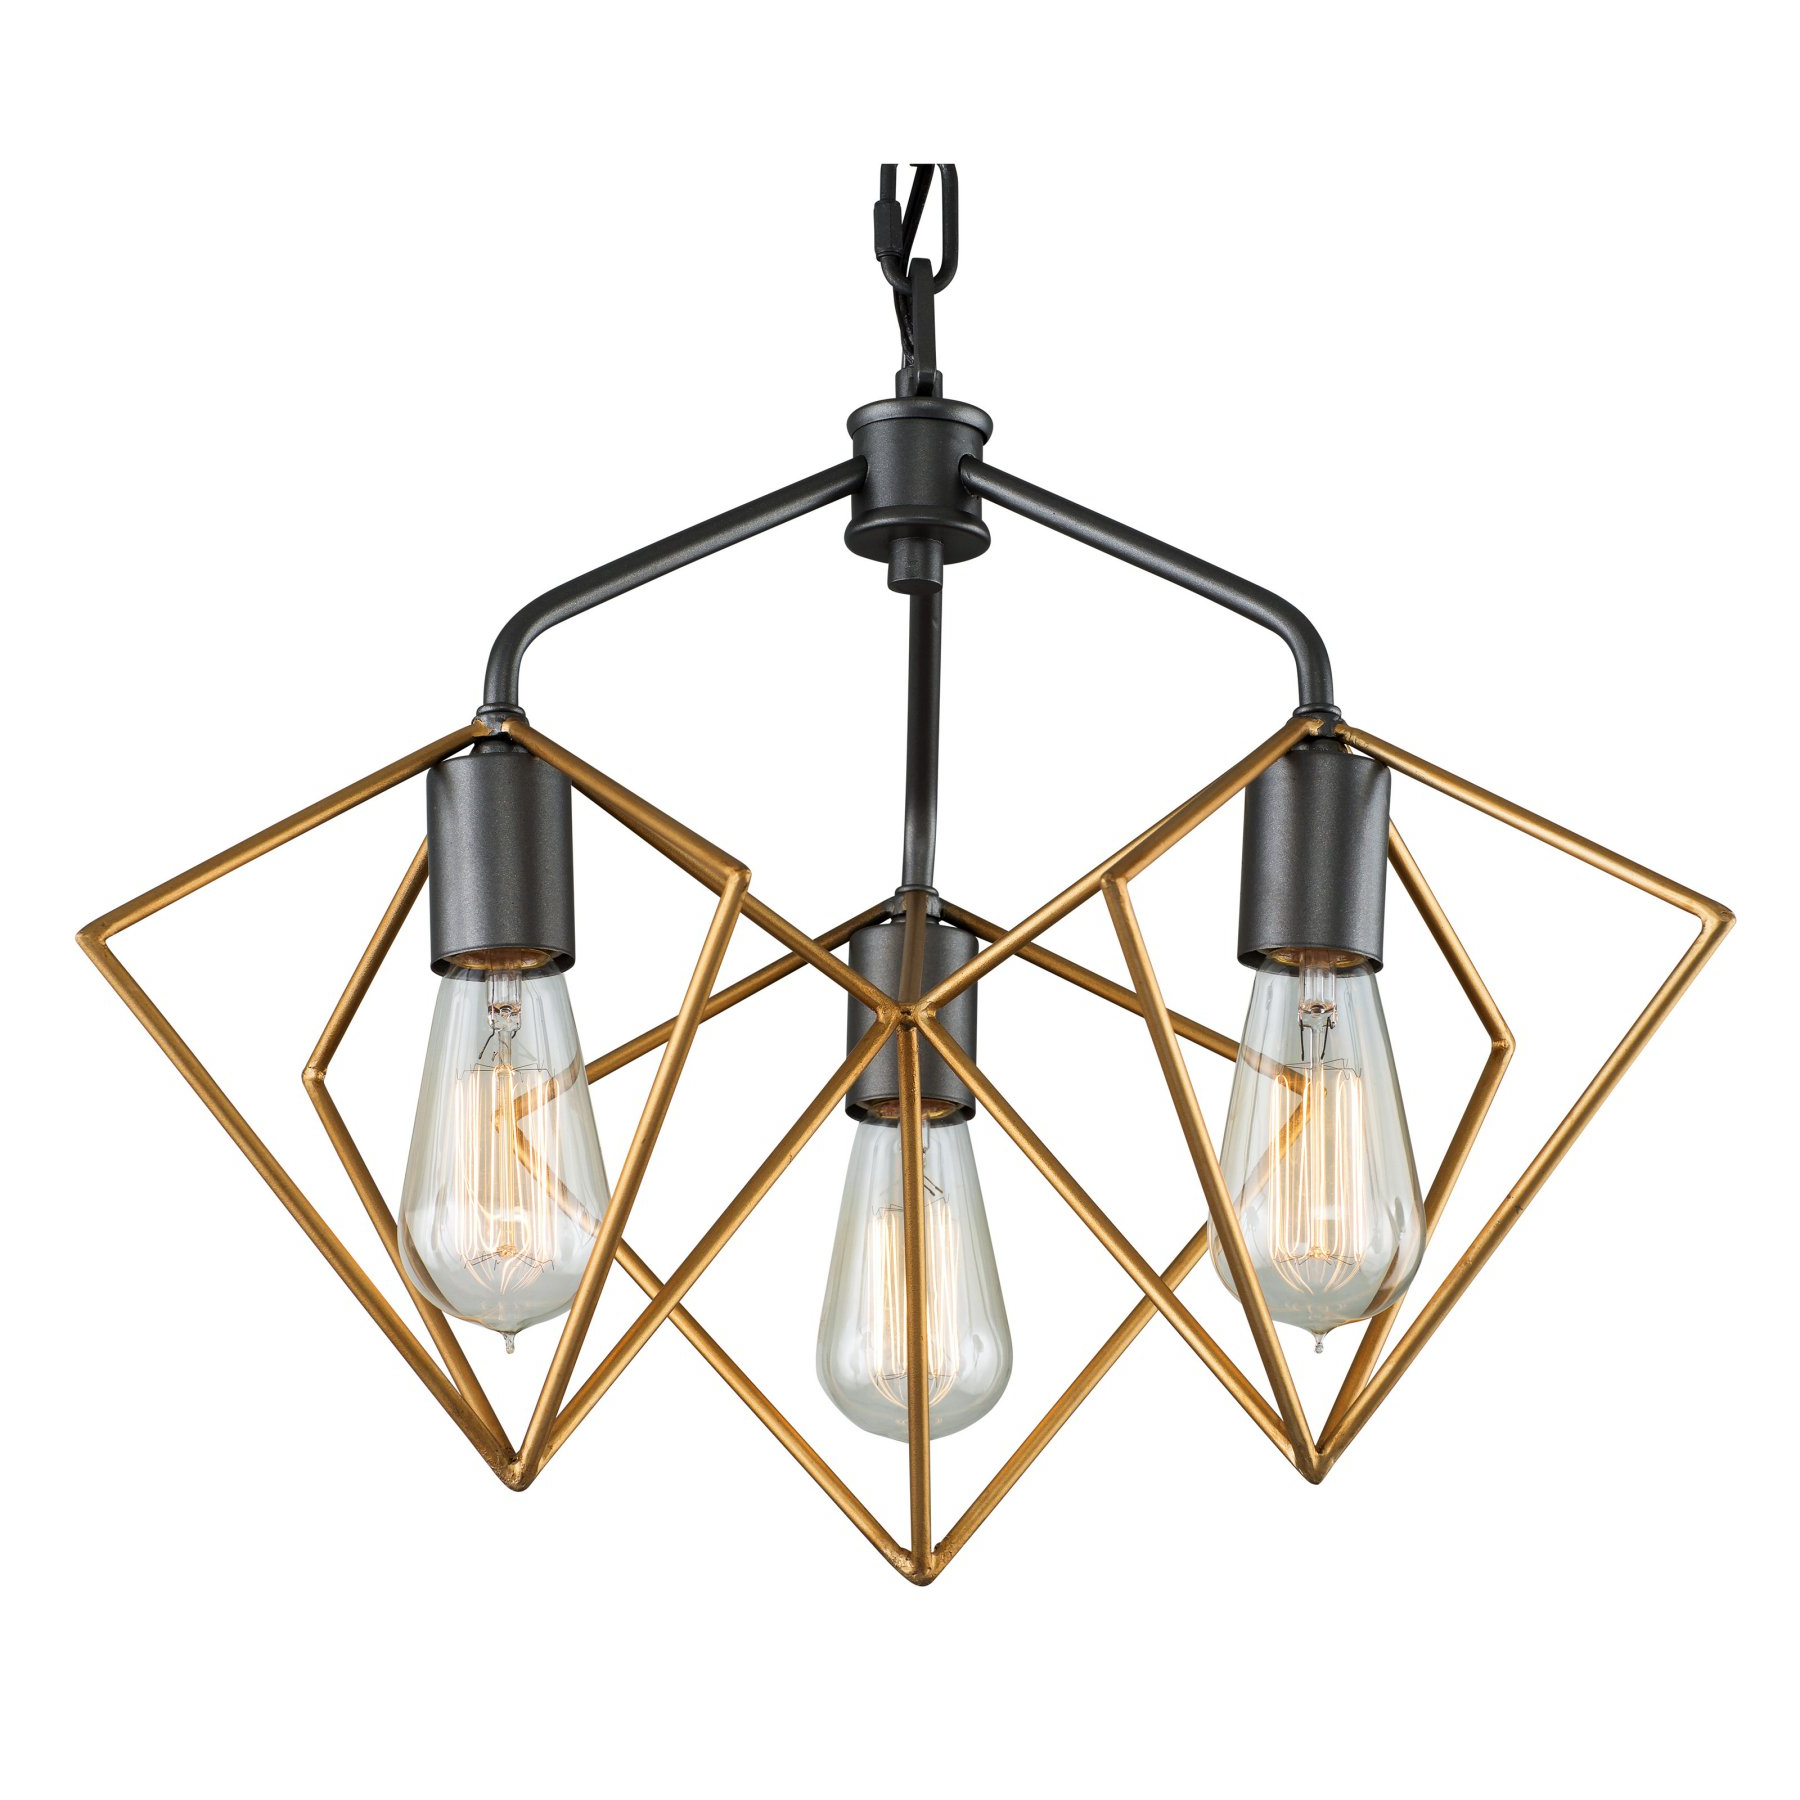 Fashionable Hewitt 4 Light Square Chandeliers Throughout Varaluz Metropolis 261P03Agrb Pendant Light – 261P03Agrb (View 11 of 25)